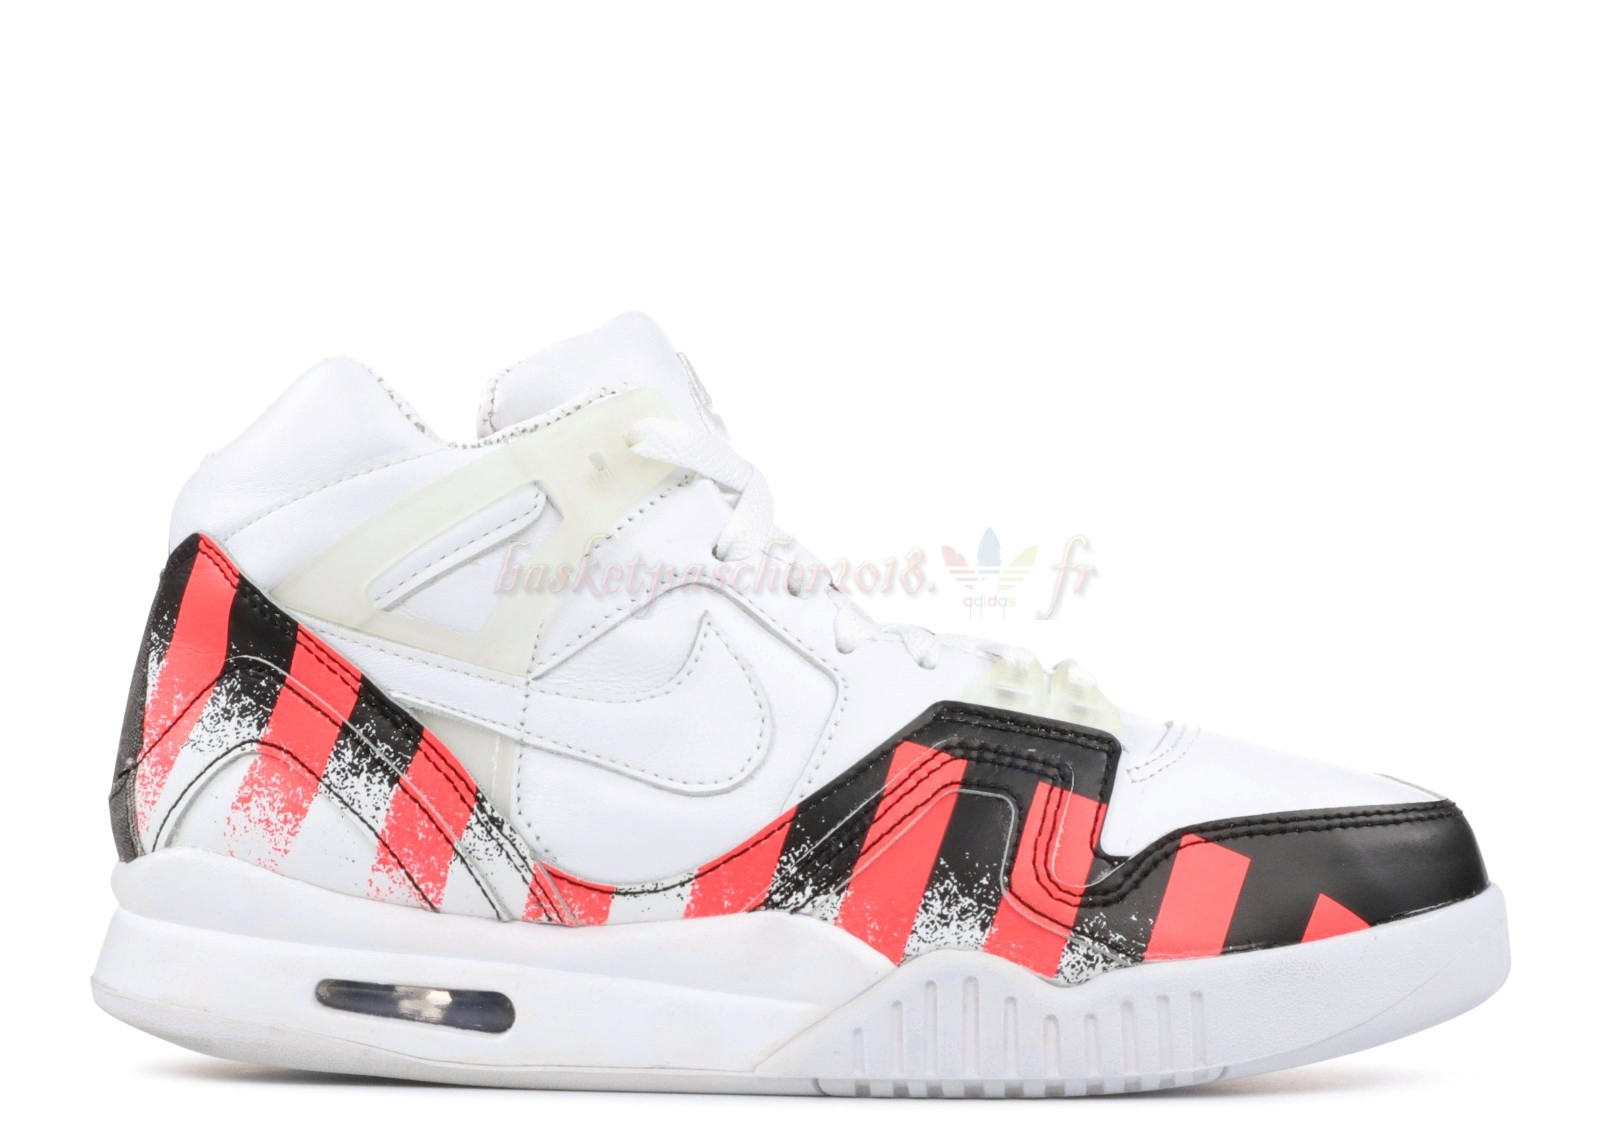 "Vente Chaude Chaussures De Basketball Homme Air Tech Challenge 2 ""French Open"" Blanc Pas Cher"